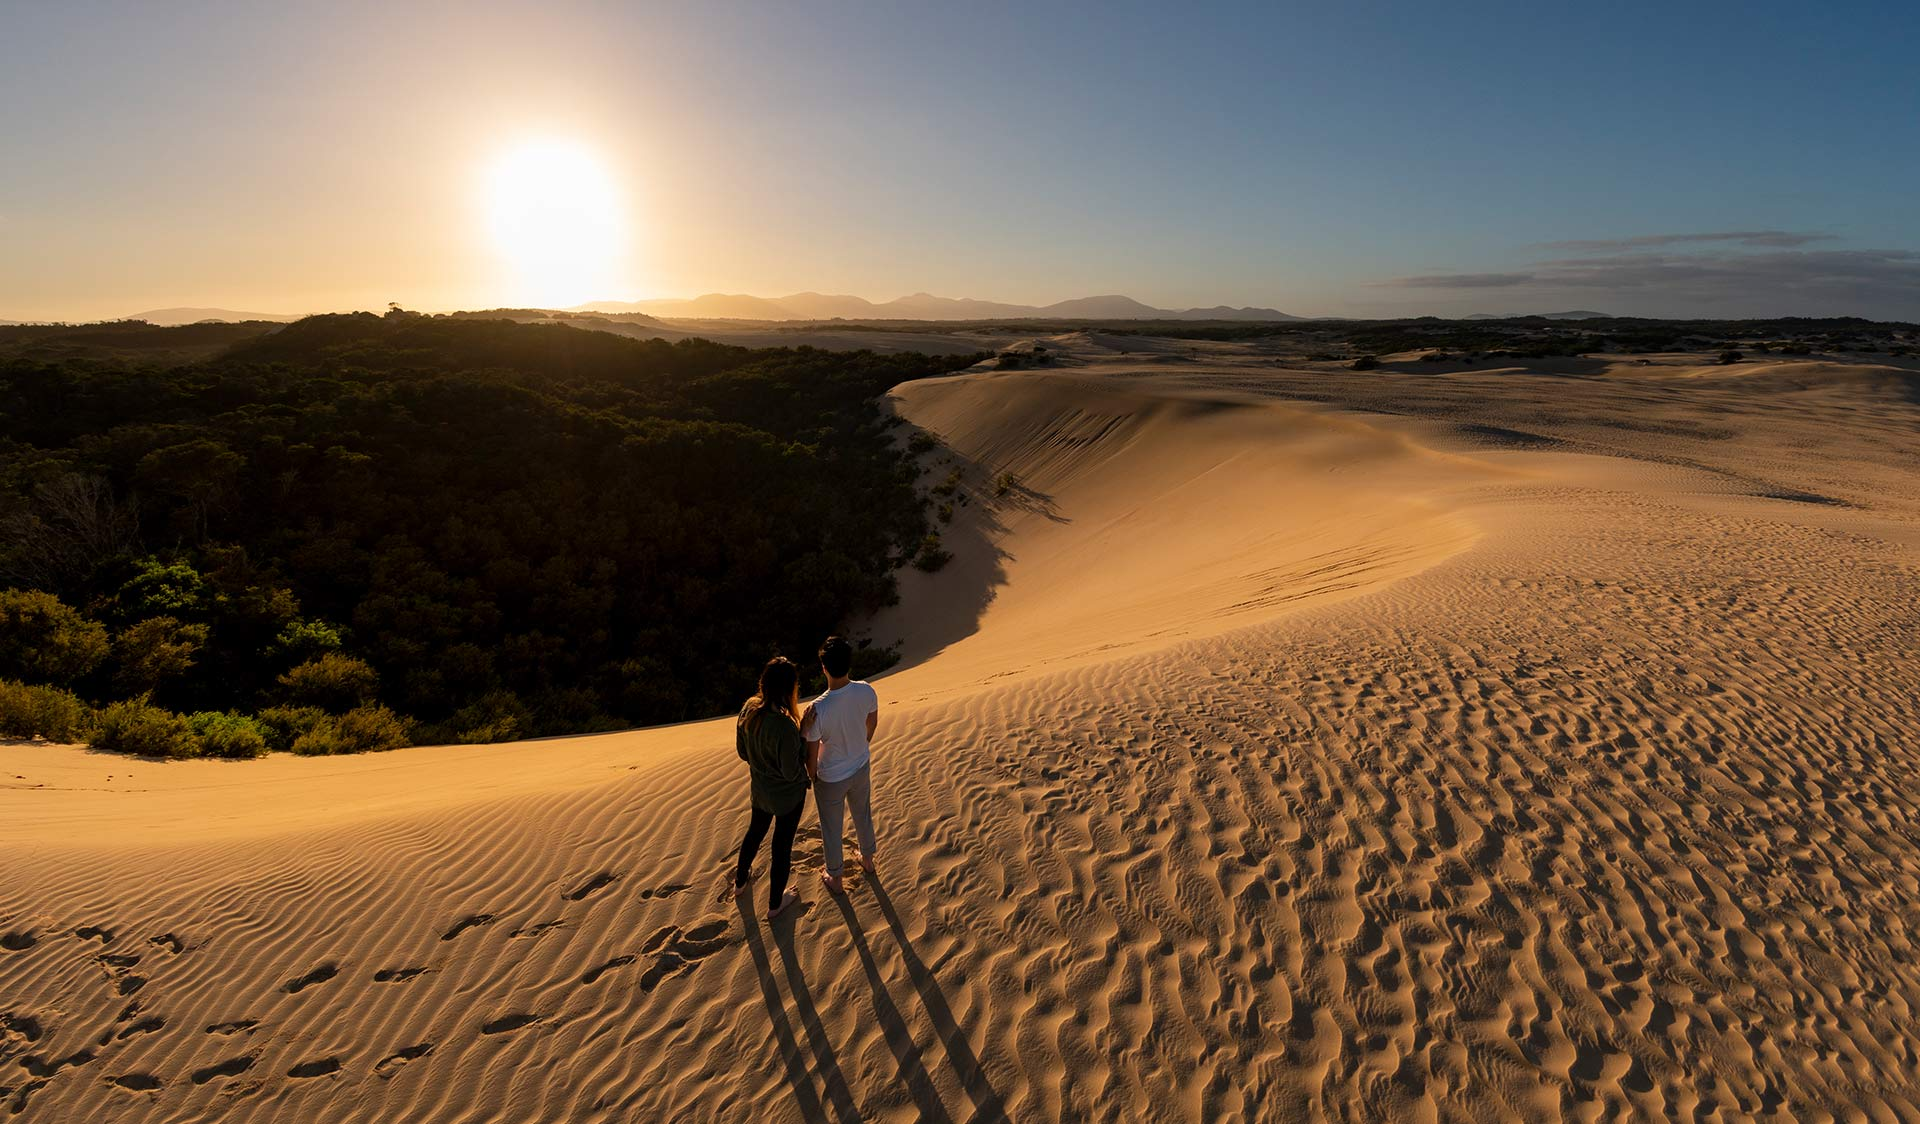 A man and woman rest and enjoy the view a the top of an enourmous sand dune in the northern part of Wilsons Promontory.